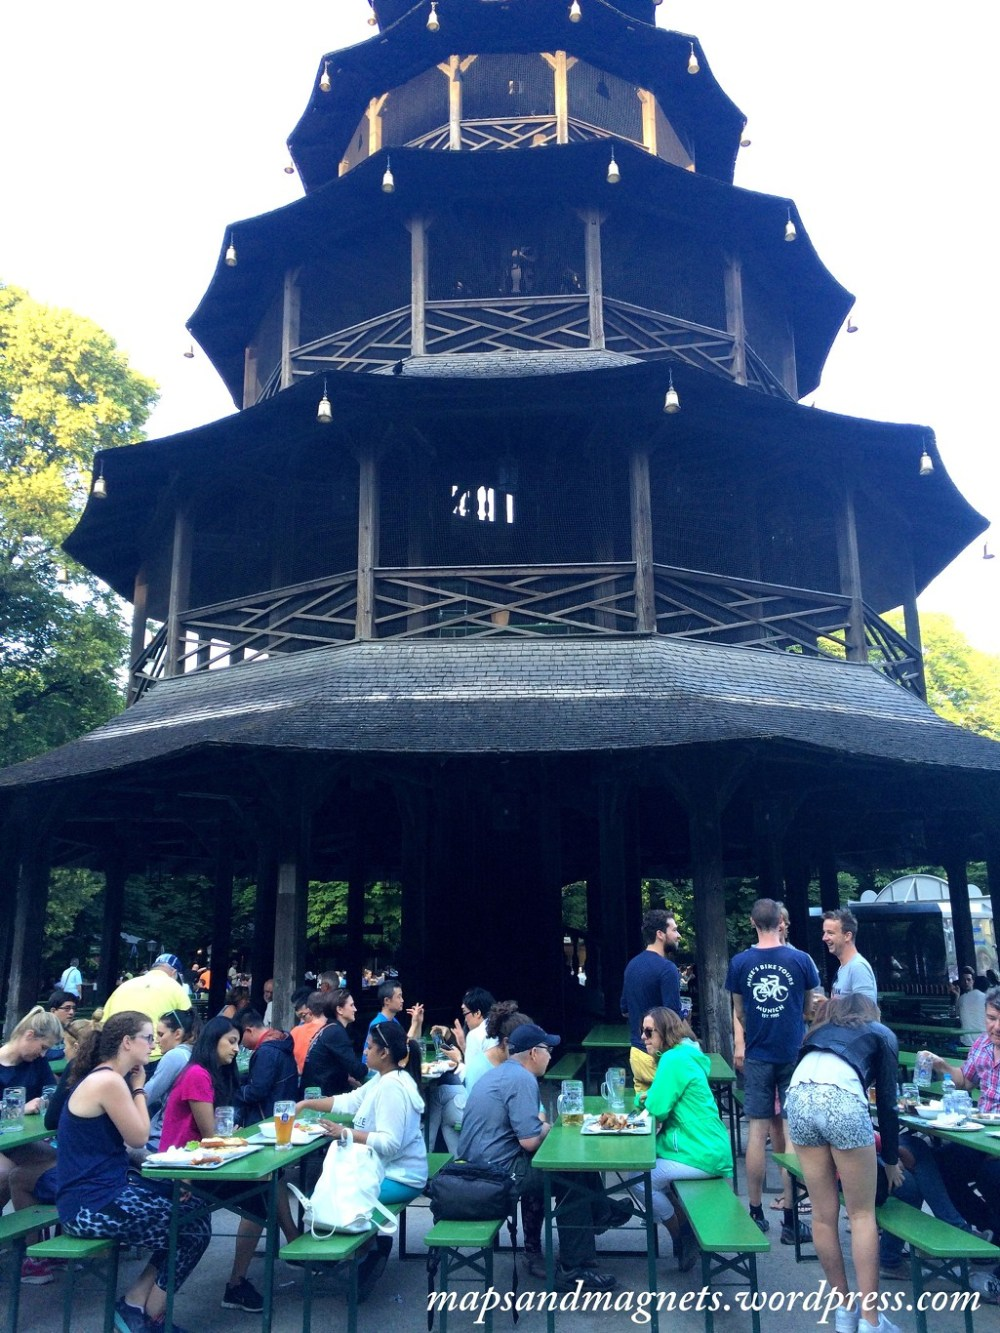 Offbeat Munich: Chinese beergarden is the second largest in the world